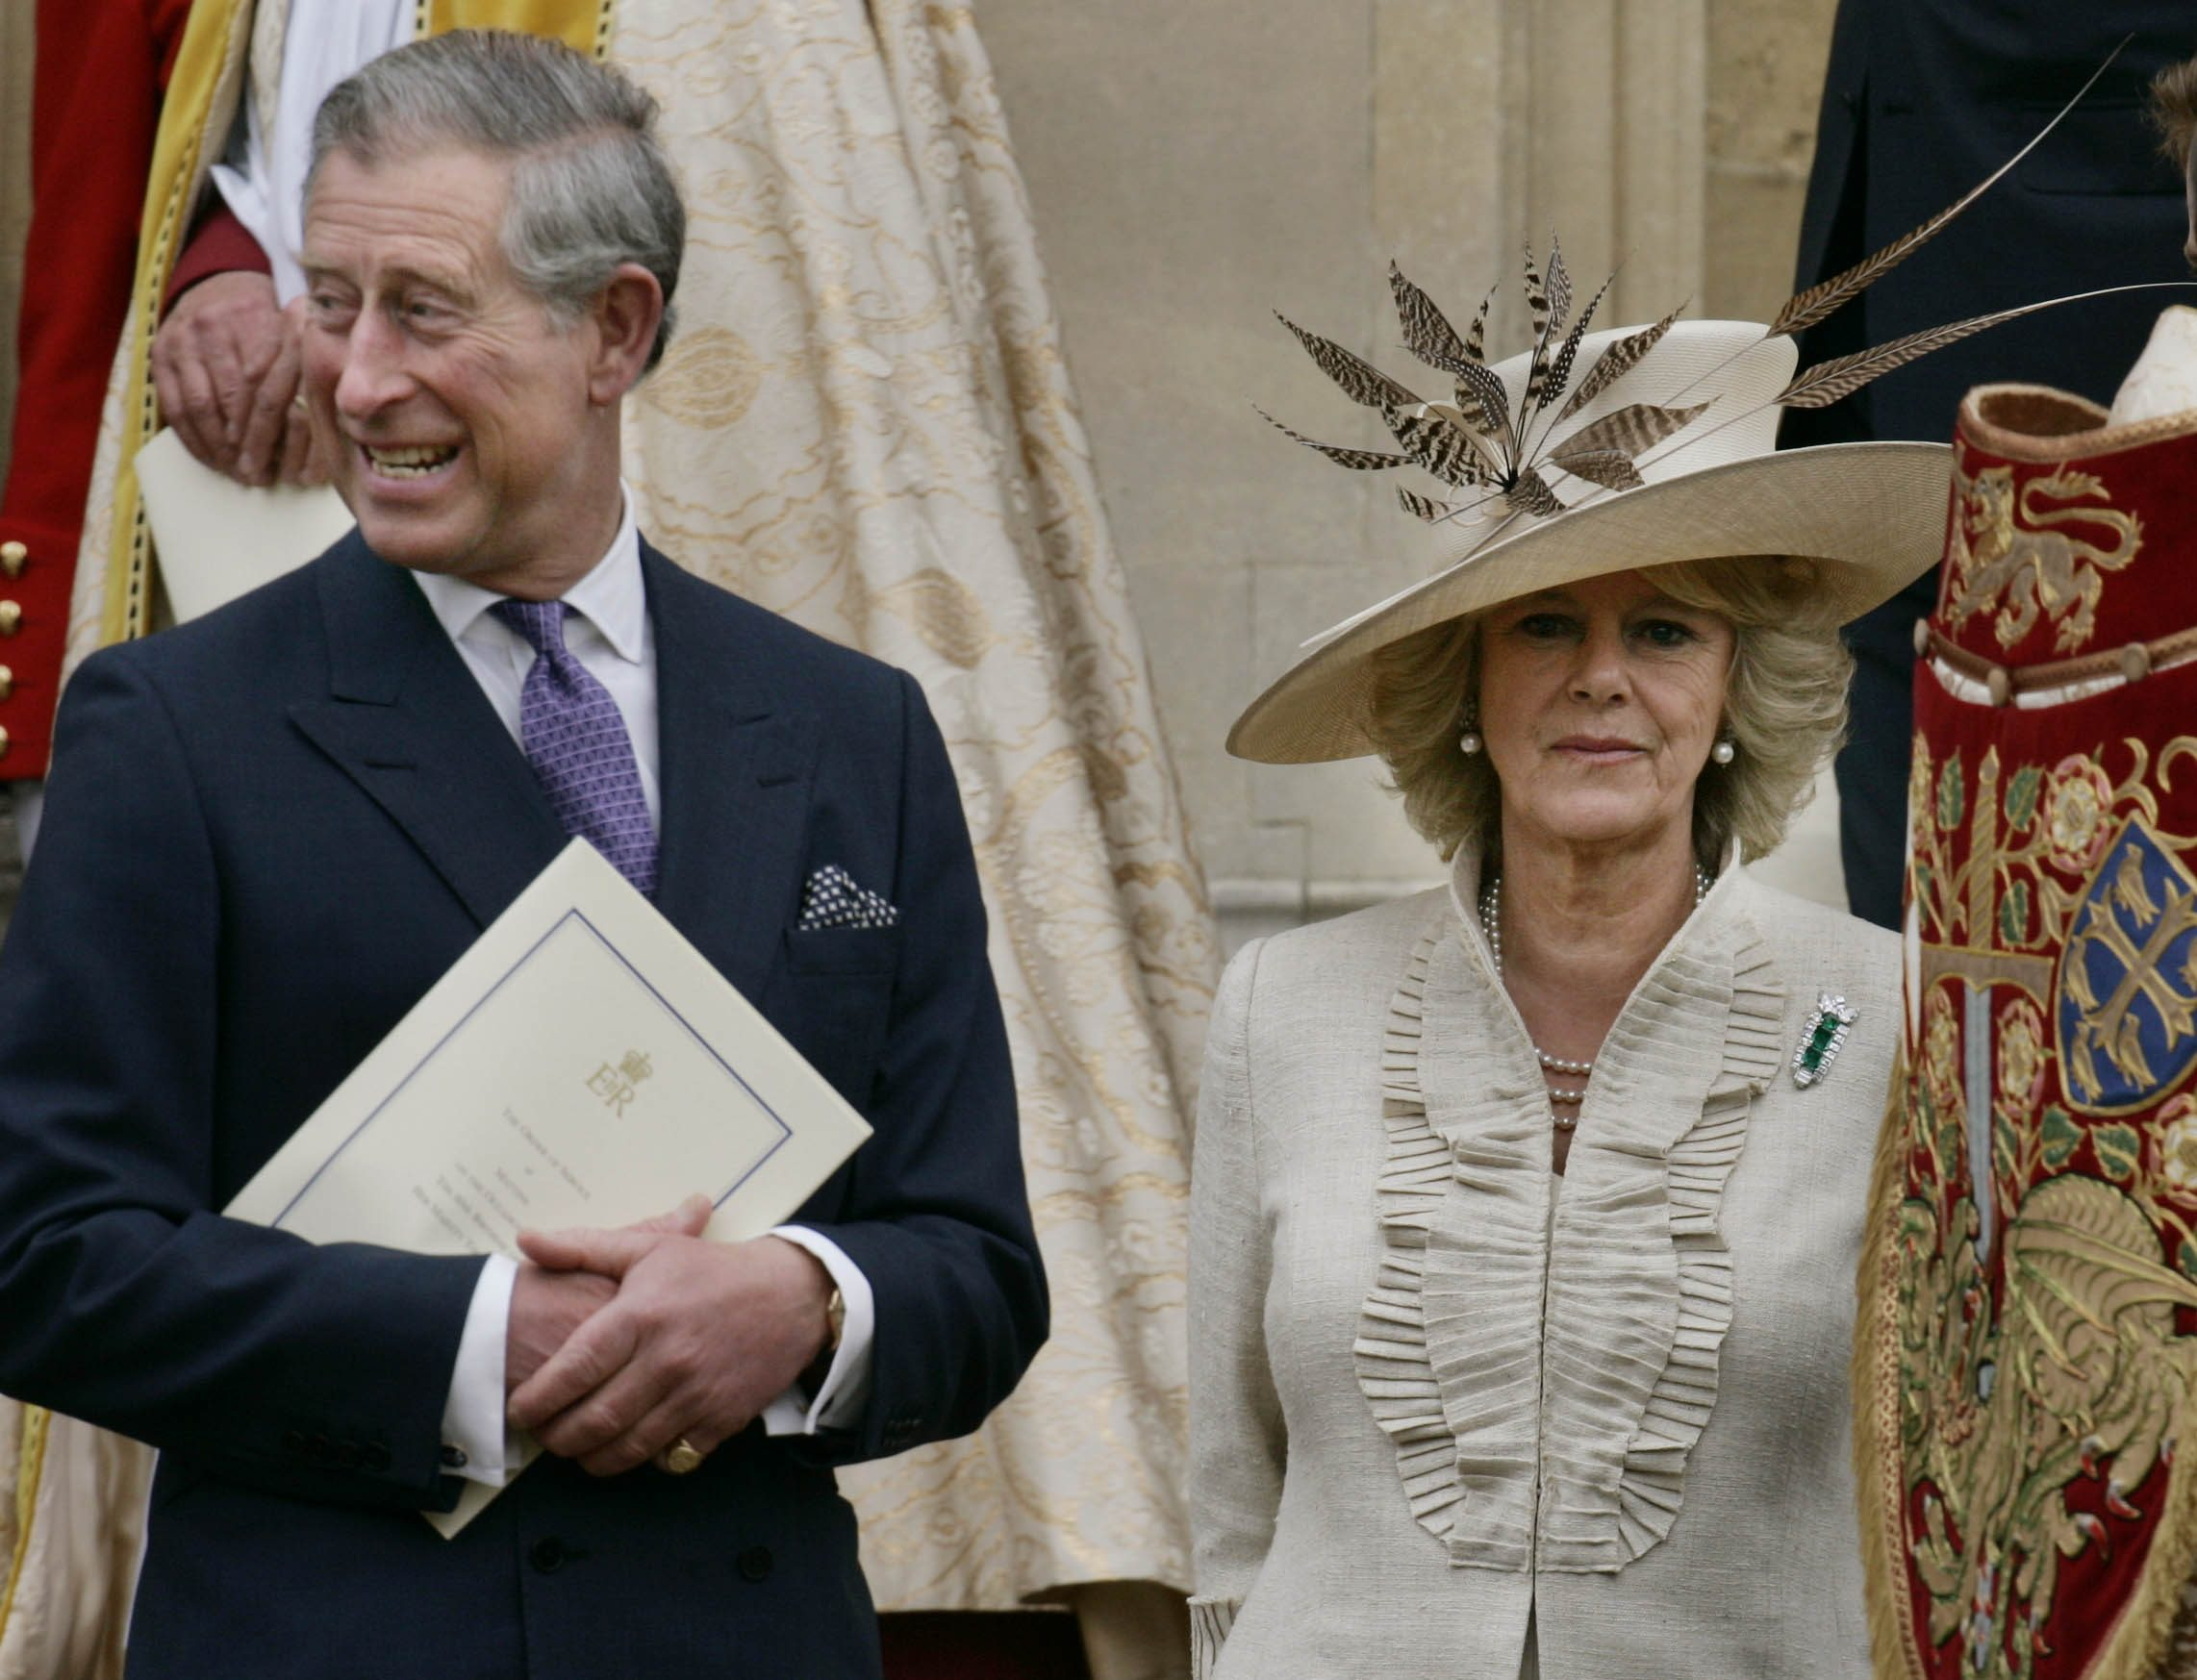 Mandatory Credit: Photo by Lefteris Pitarakis/AP/Shutterstock (7393615a) Prince Charles, Camilla, Duchess of Cornwall Britain's Prince Charles, left, and his wife Camilla, Duchess of Cornwall, leave Windsor Castle's St. Georges Chapel in Windsor, England, Sunday, April 23. 2006, following a special Service of Thanksgiving to celebrate Queen Elizabeth II's 80th birthday. Queen Elizabeth II, was born on and became Queen in February 1952 BRITAIN QUEEN'S 8OTH, WINDSOR, United Kingdom England